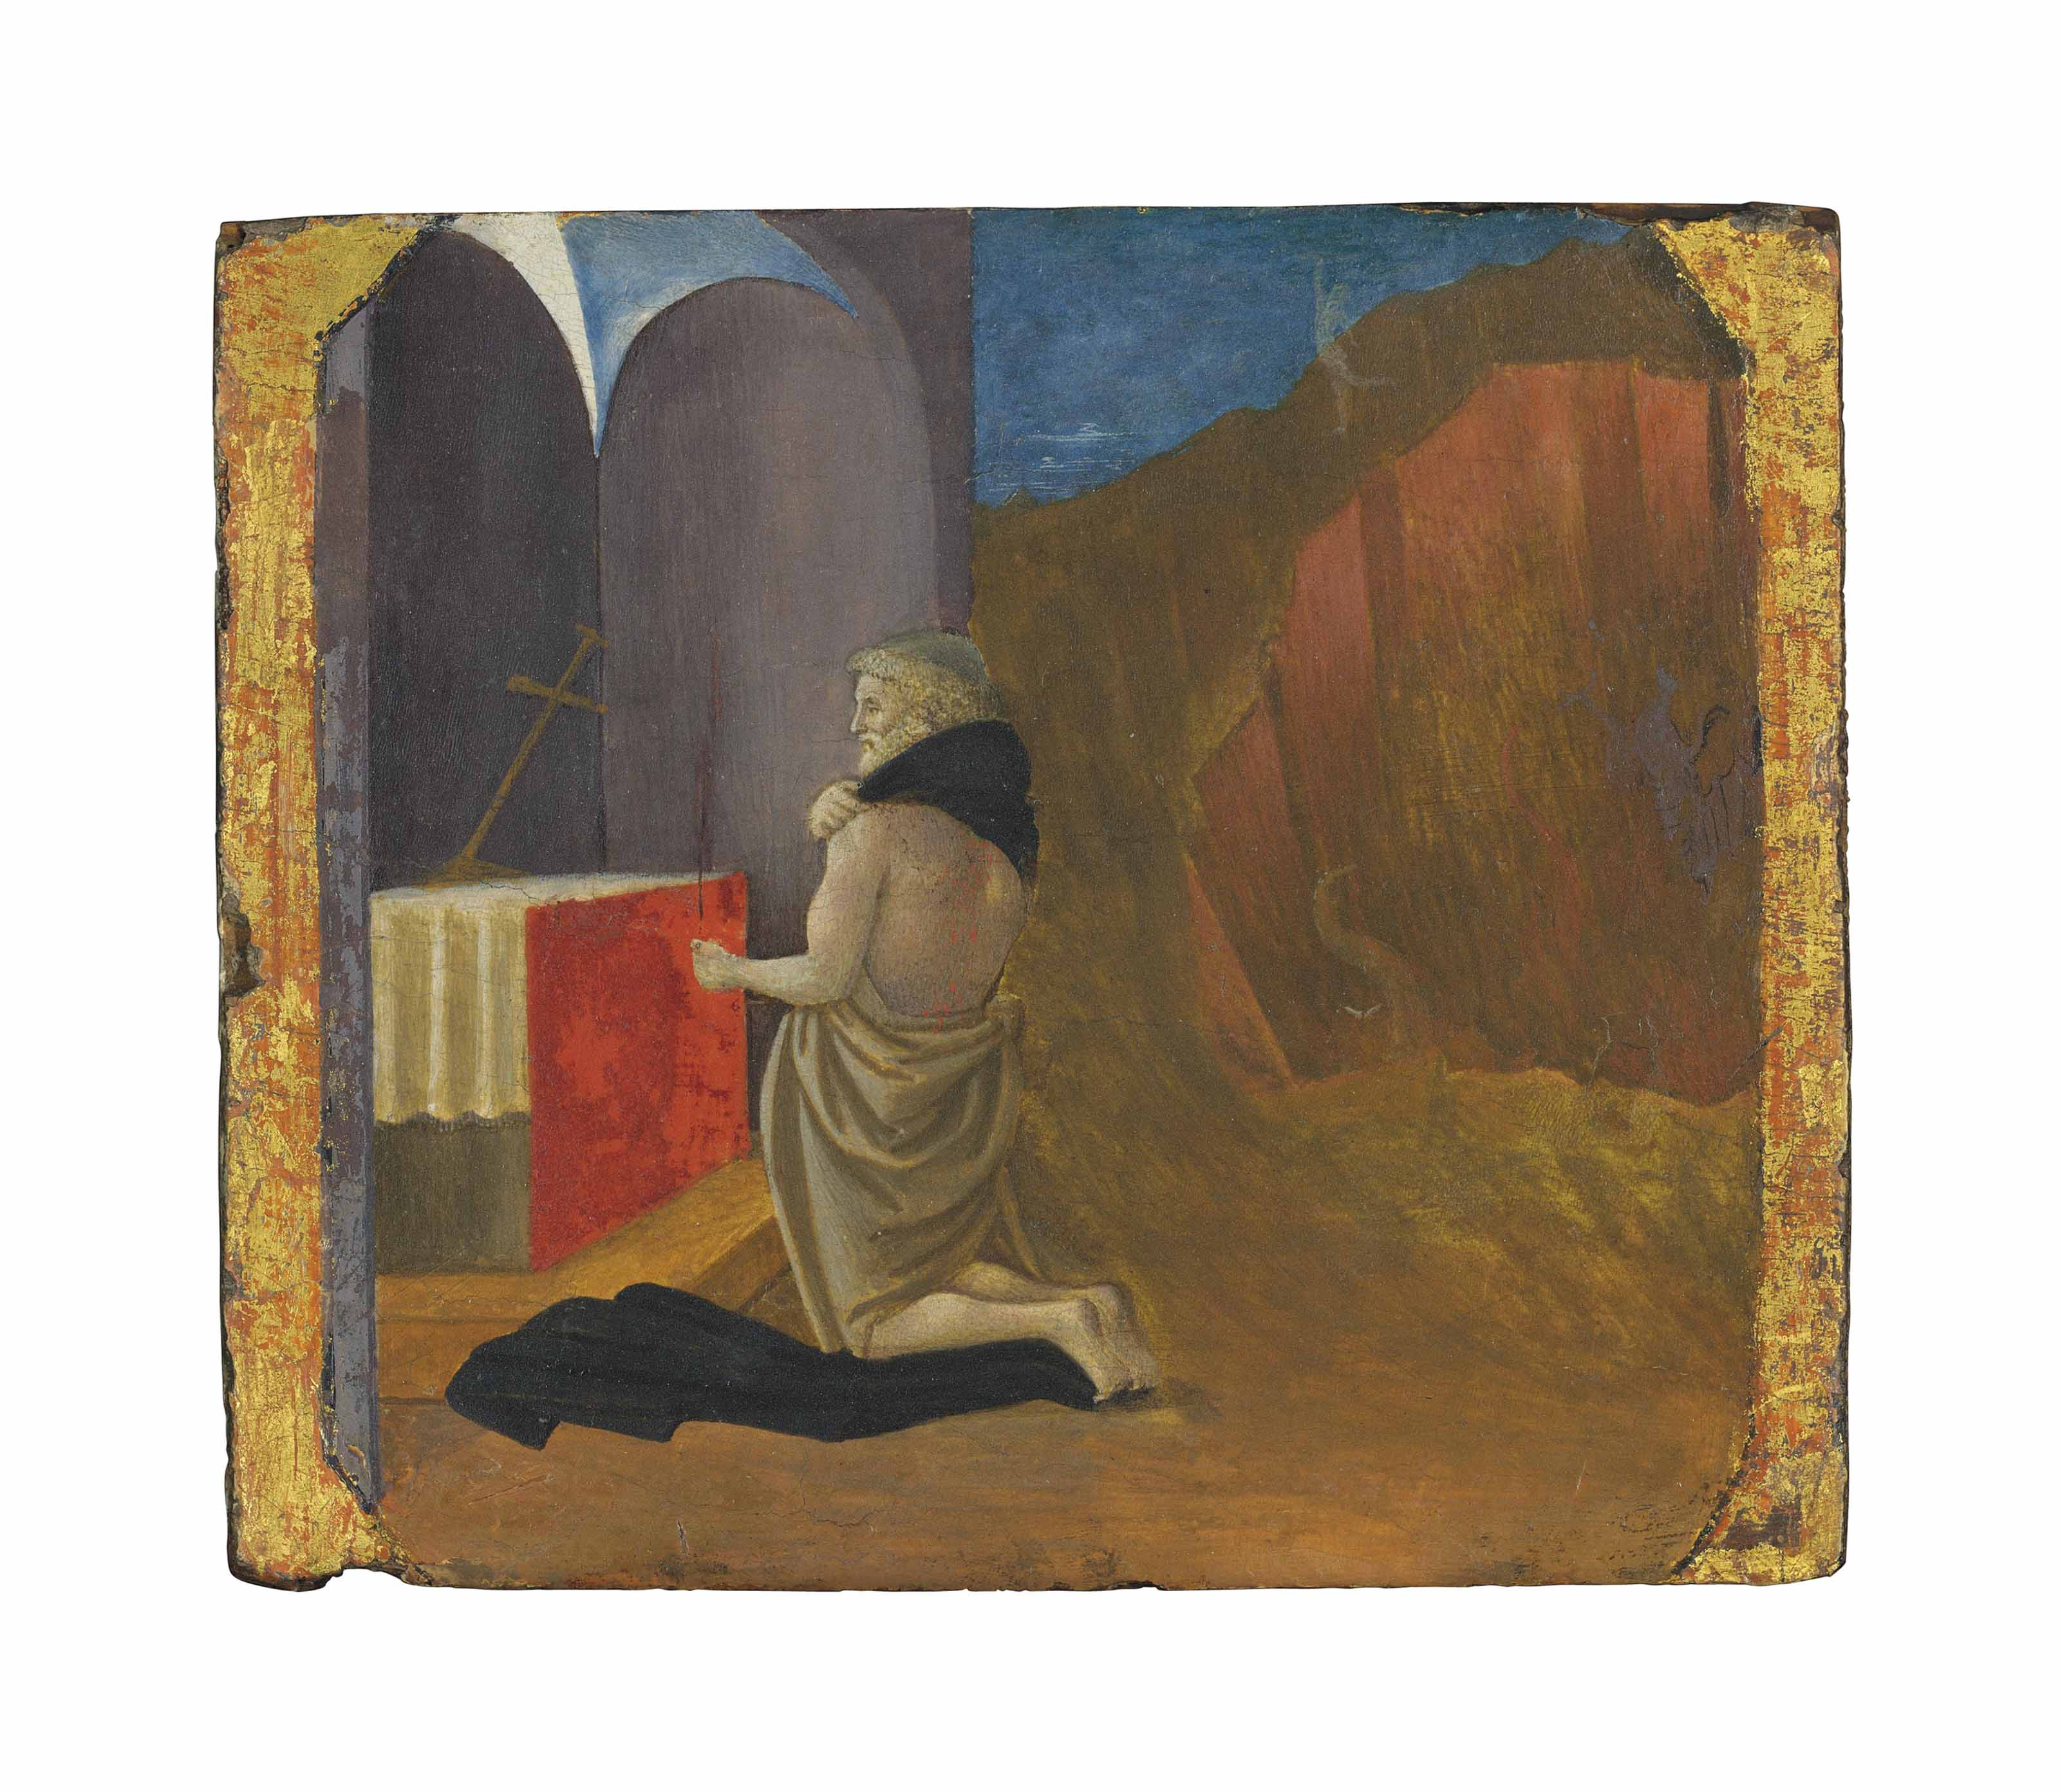 The penitent Saint Justus kneeling before an altar - a predella panel